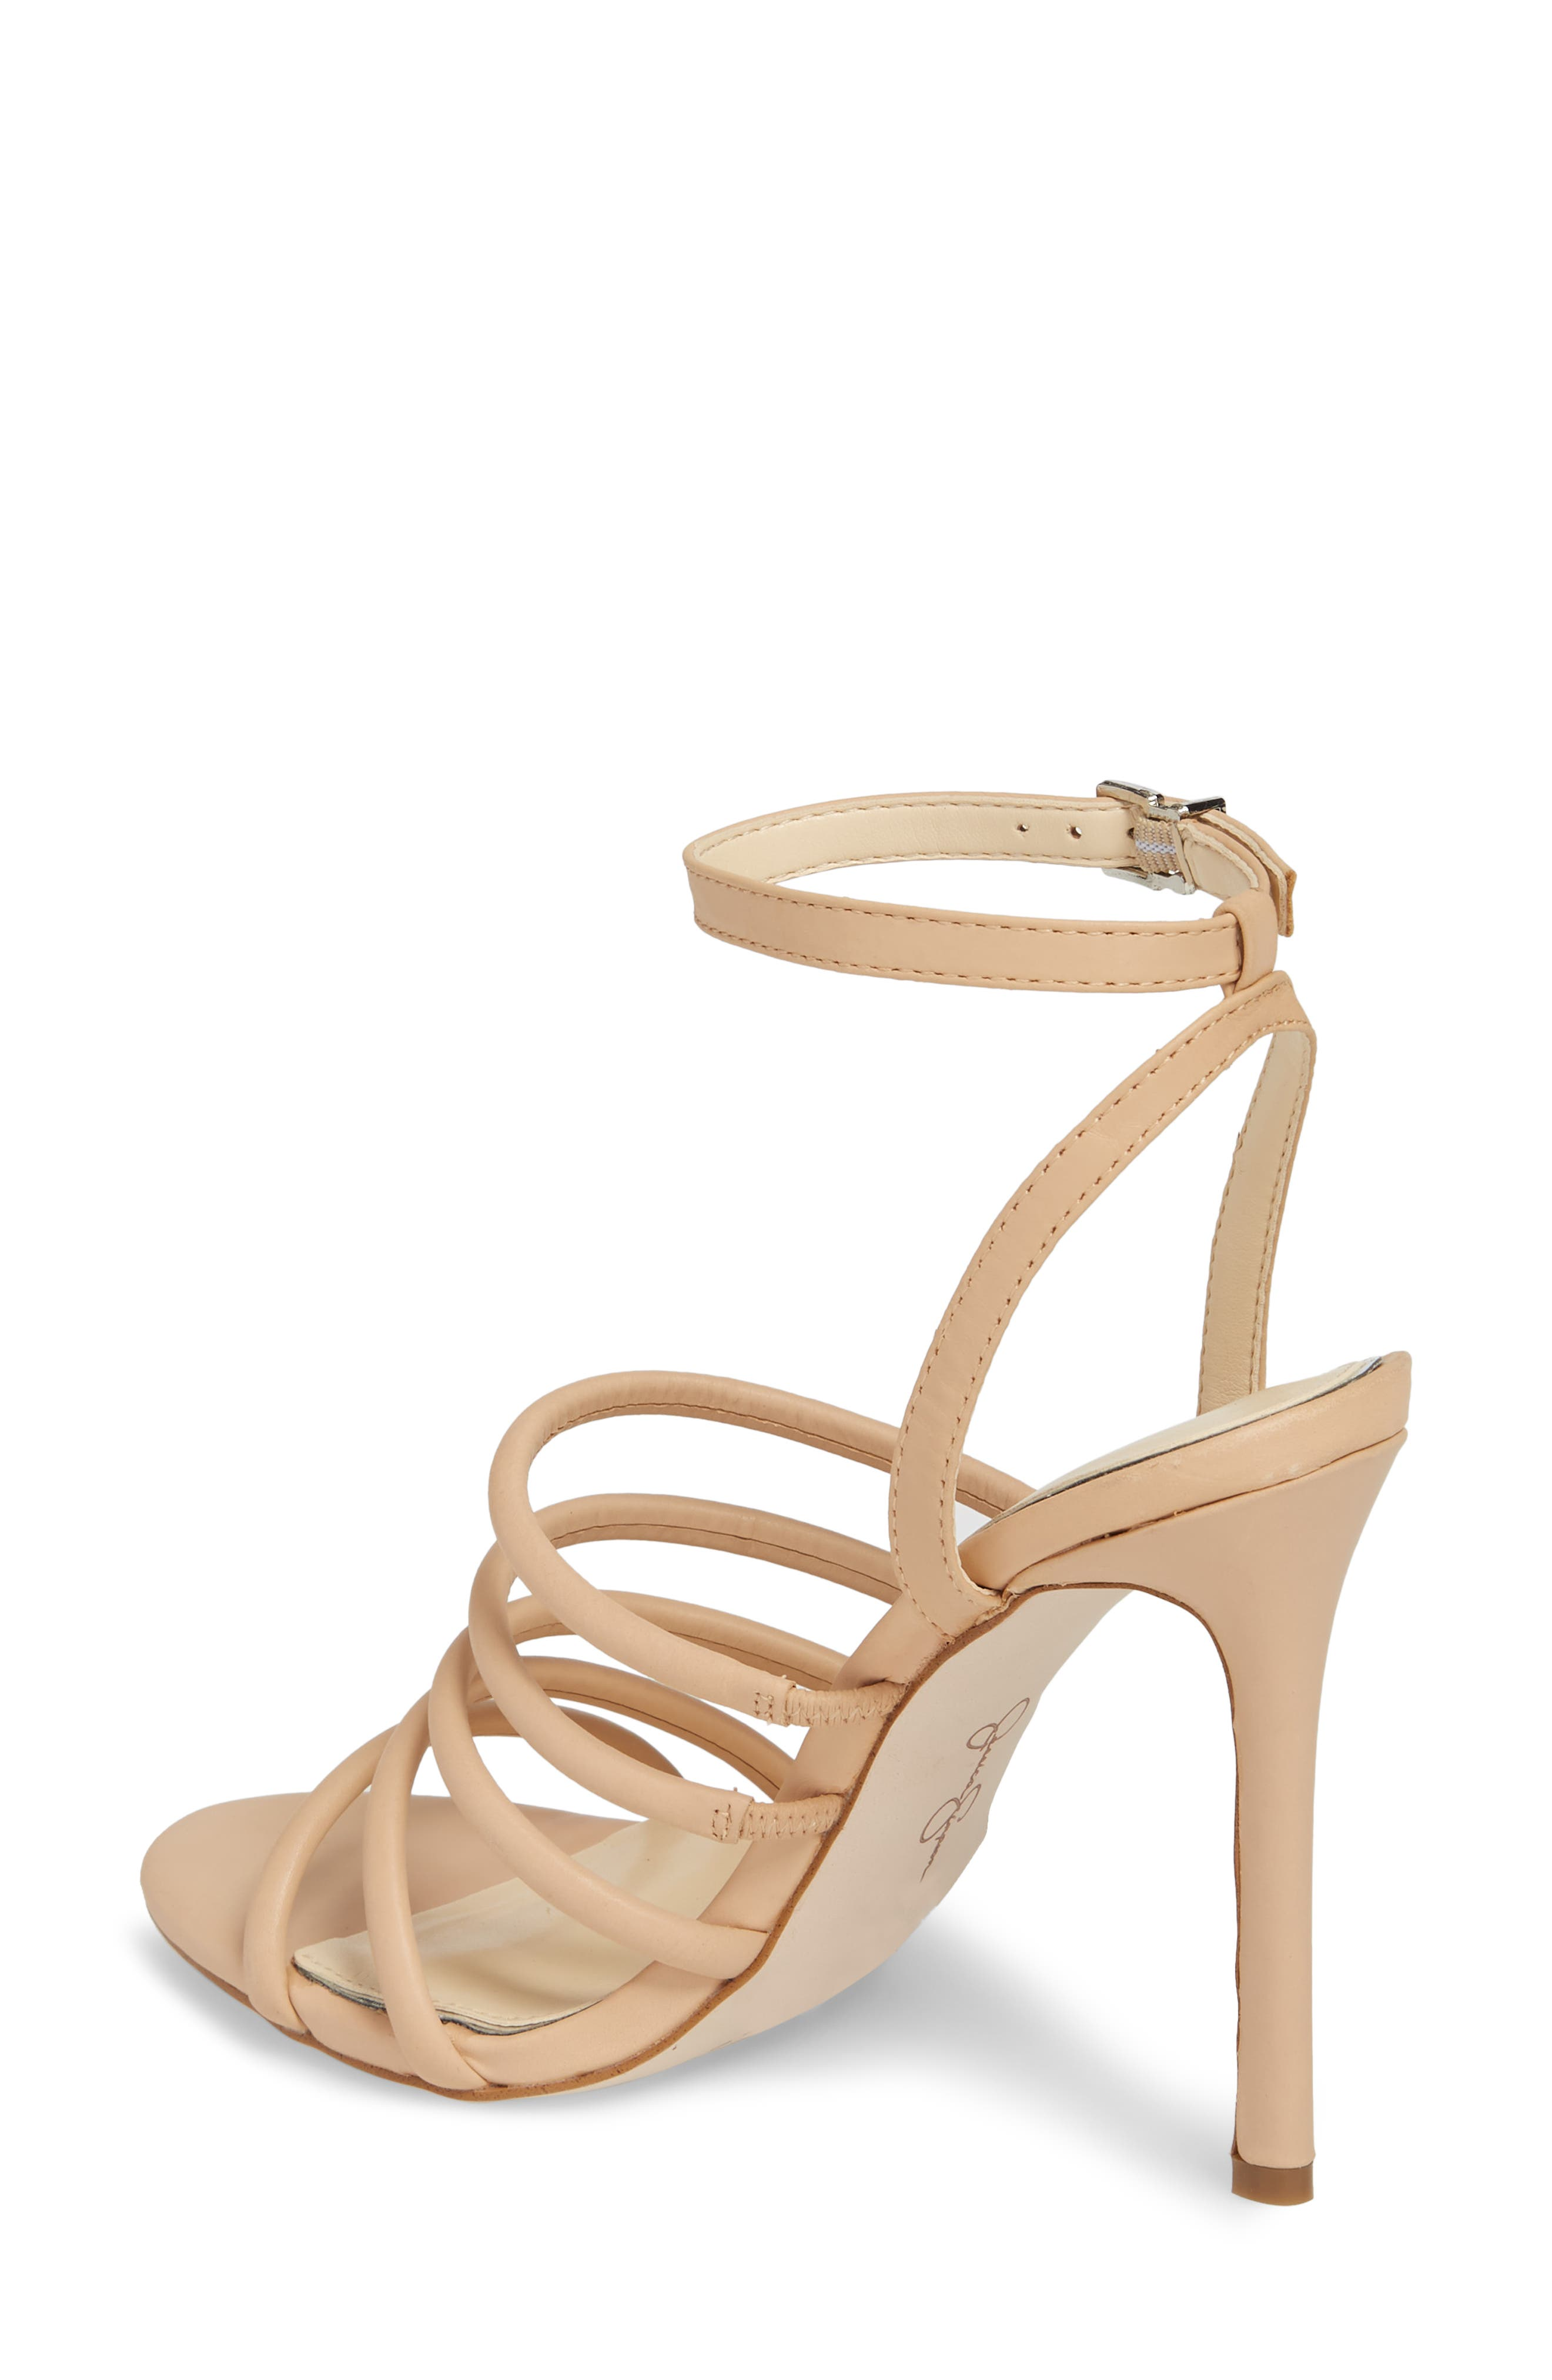 Joselle Strappy Sandal,                             Alternate thumbnail 6, color,